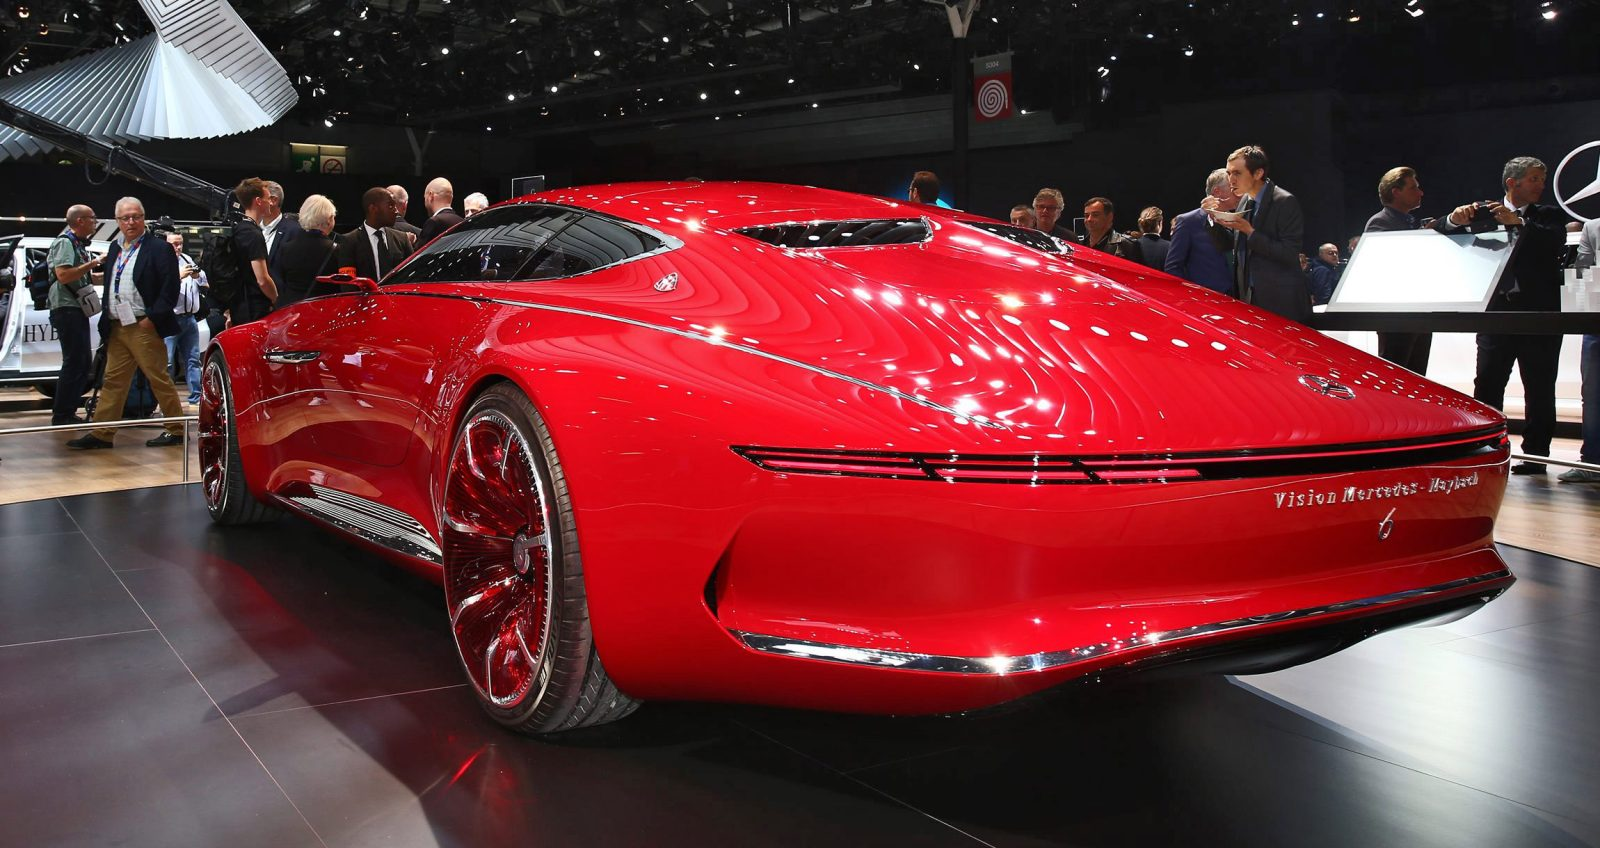 http://www.car-revs-daily.com/wp-content/uploads/2016/09/2016-Vision-Mercedes-Maybach-6-Concept-10-1-1600x848.jpg